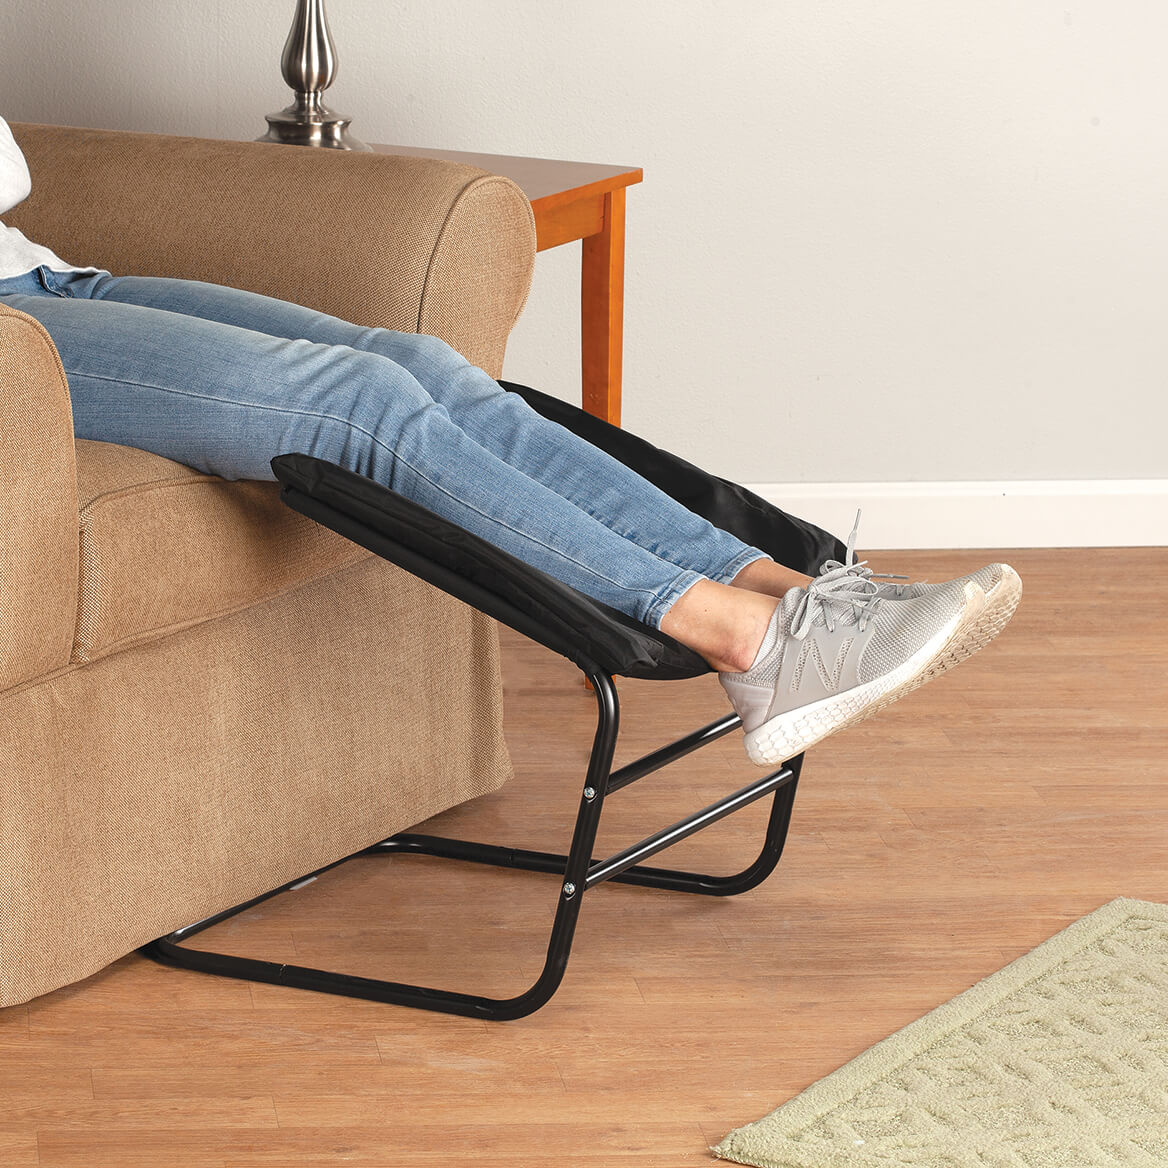 Supportive Leg Rest-370593